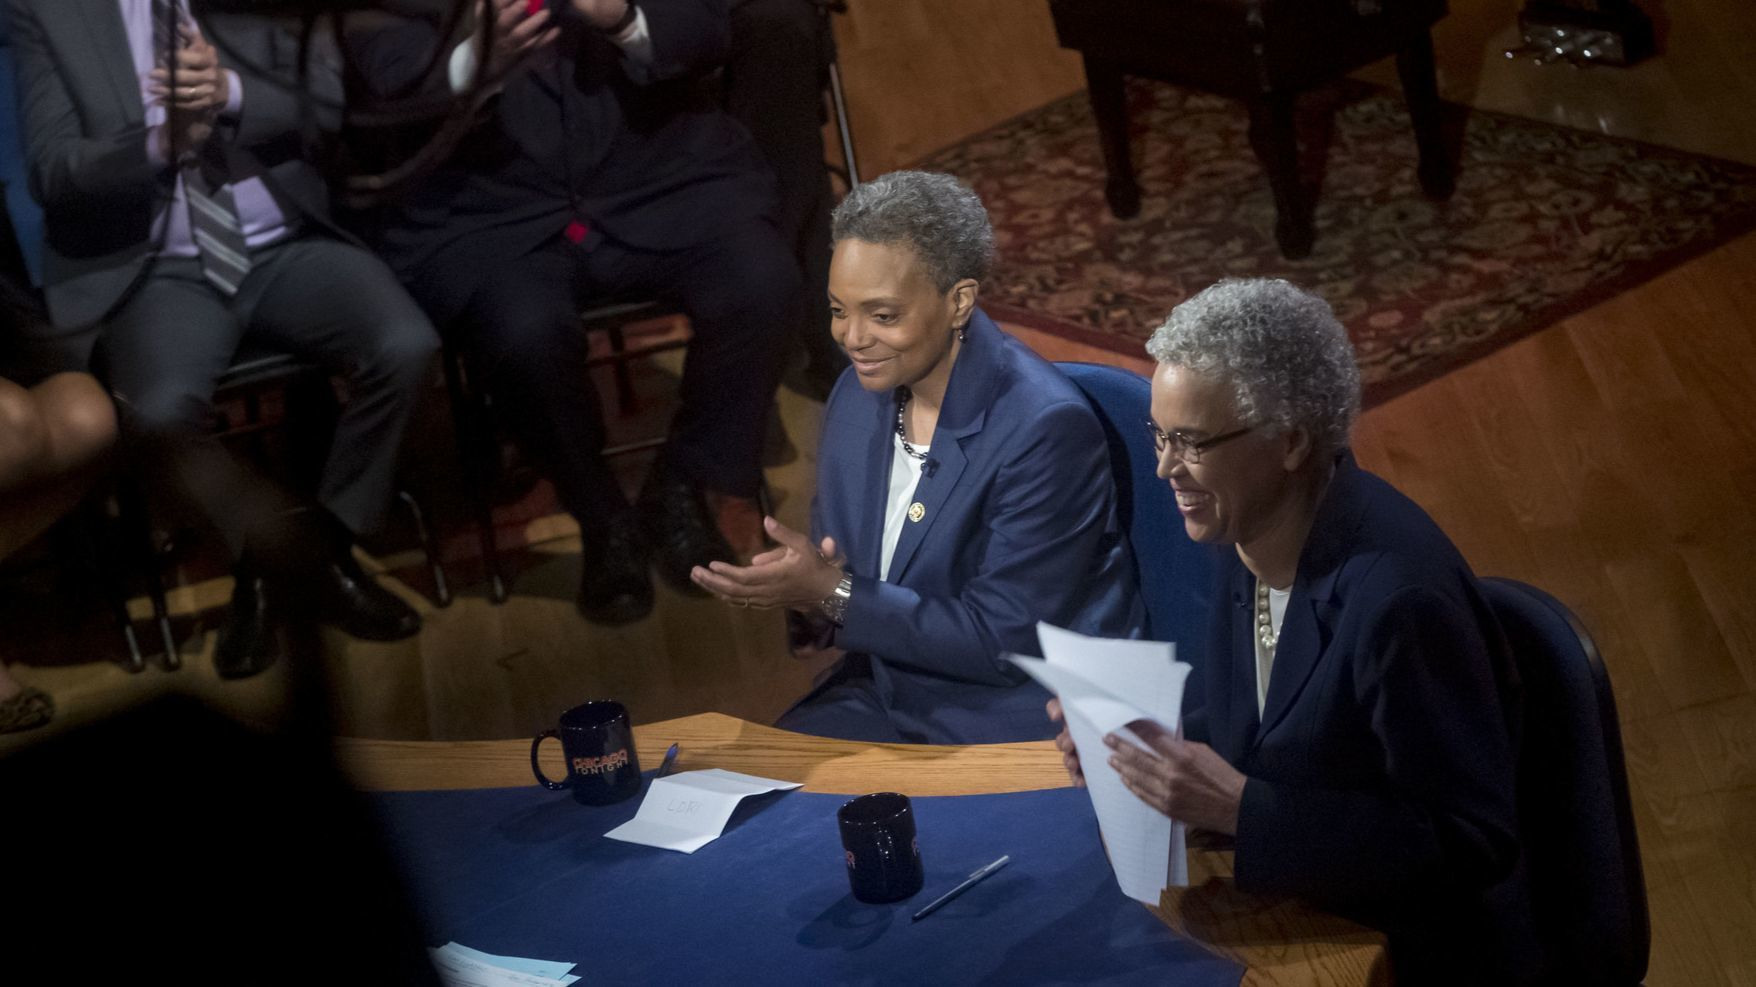 How mayoral candidates Lori Lightfoot and Toni Preckwinkle have ducked details on Chicago's financial woes